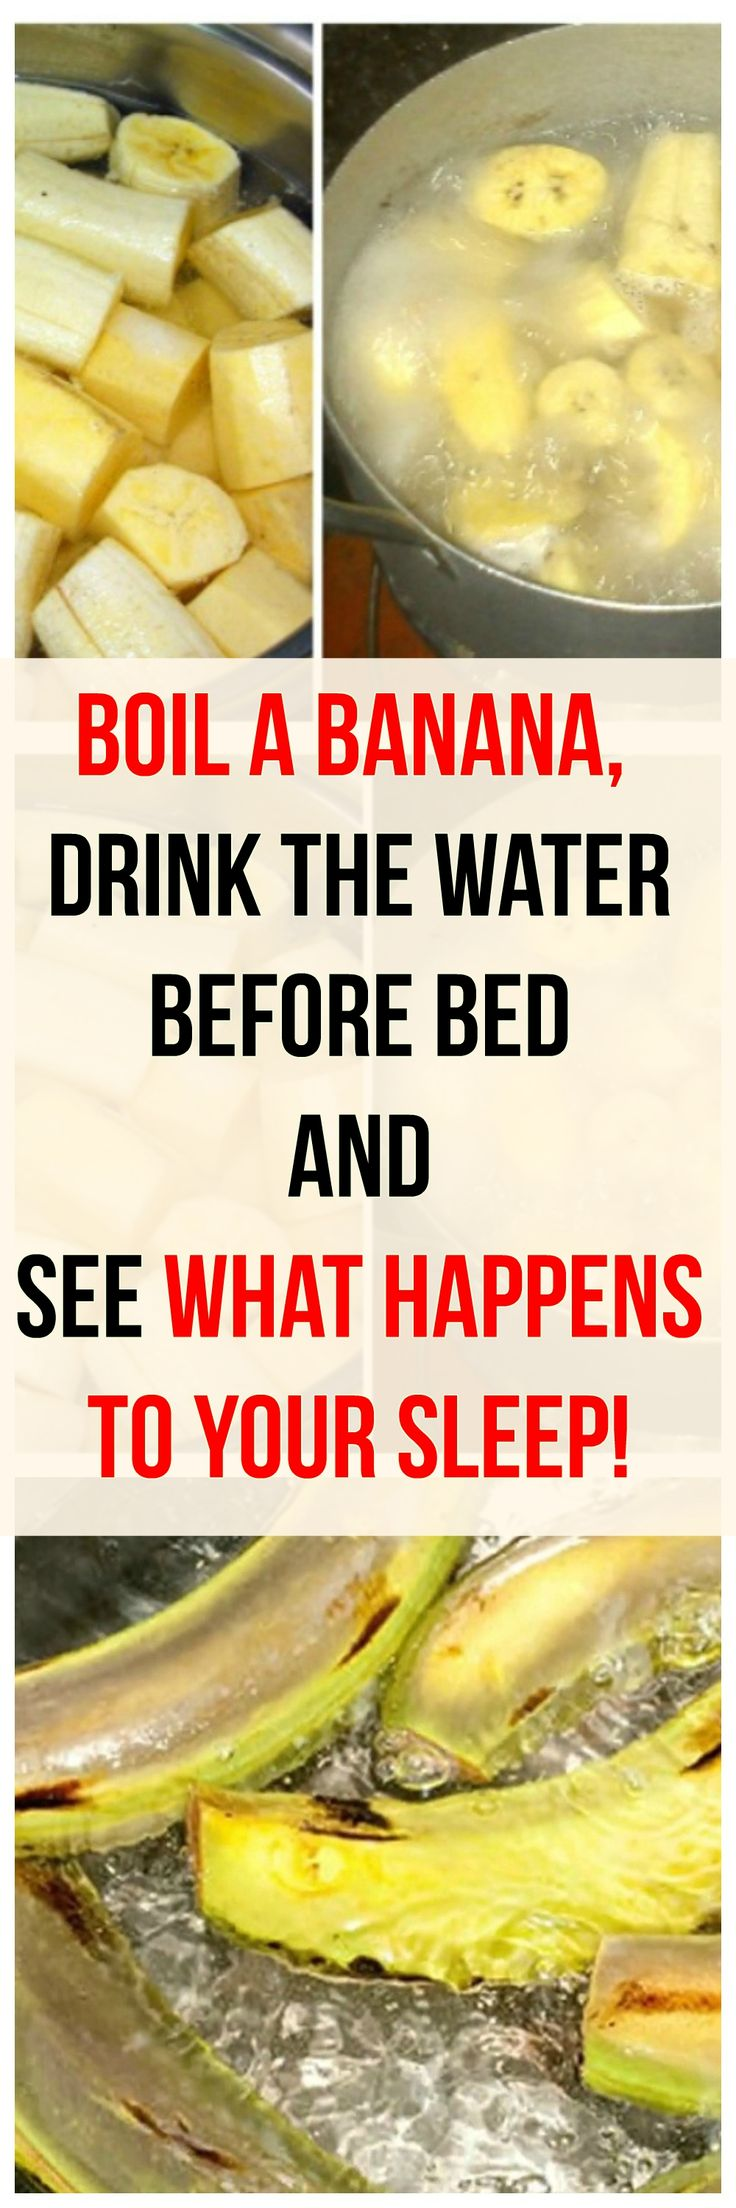 BOIL A BANANA, DRINK THE WATER BEFORE BED AND SEE WHAT HAPPENS TO YOUR SLEEP!!!